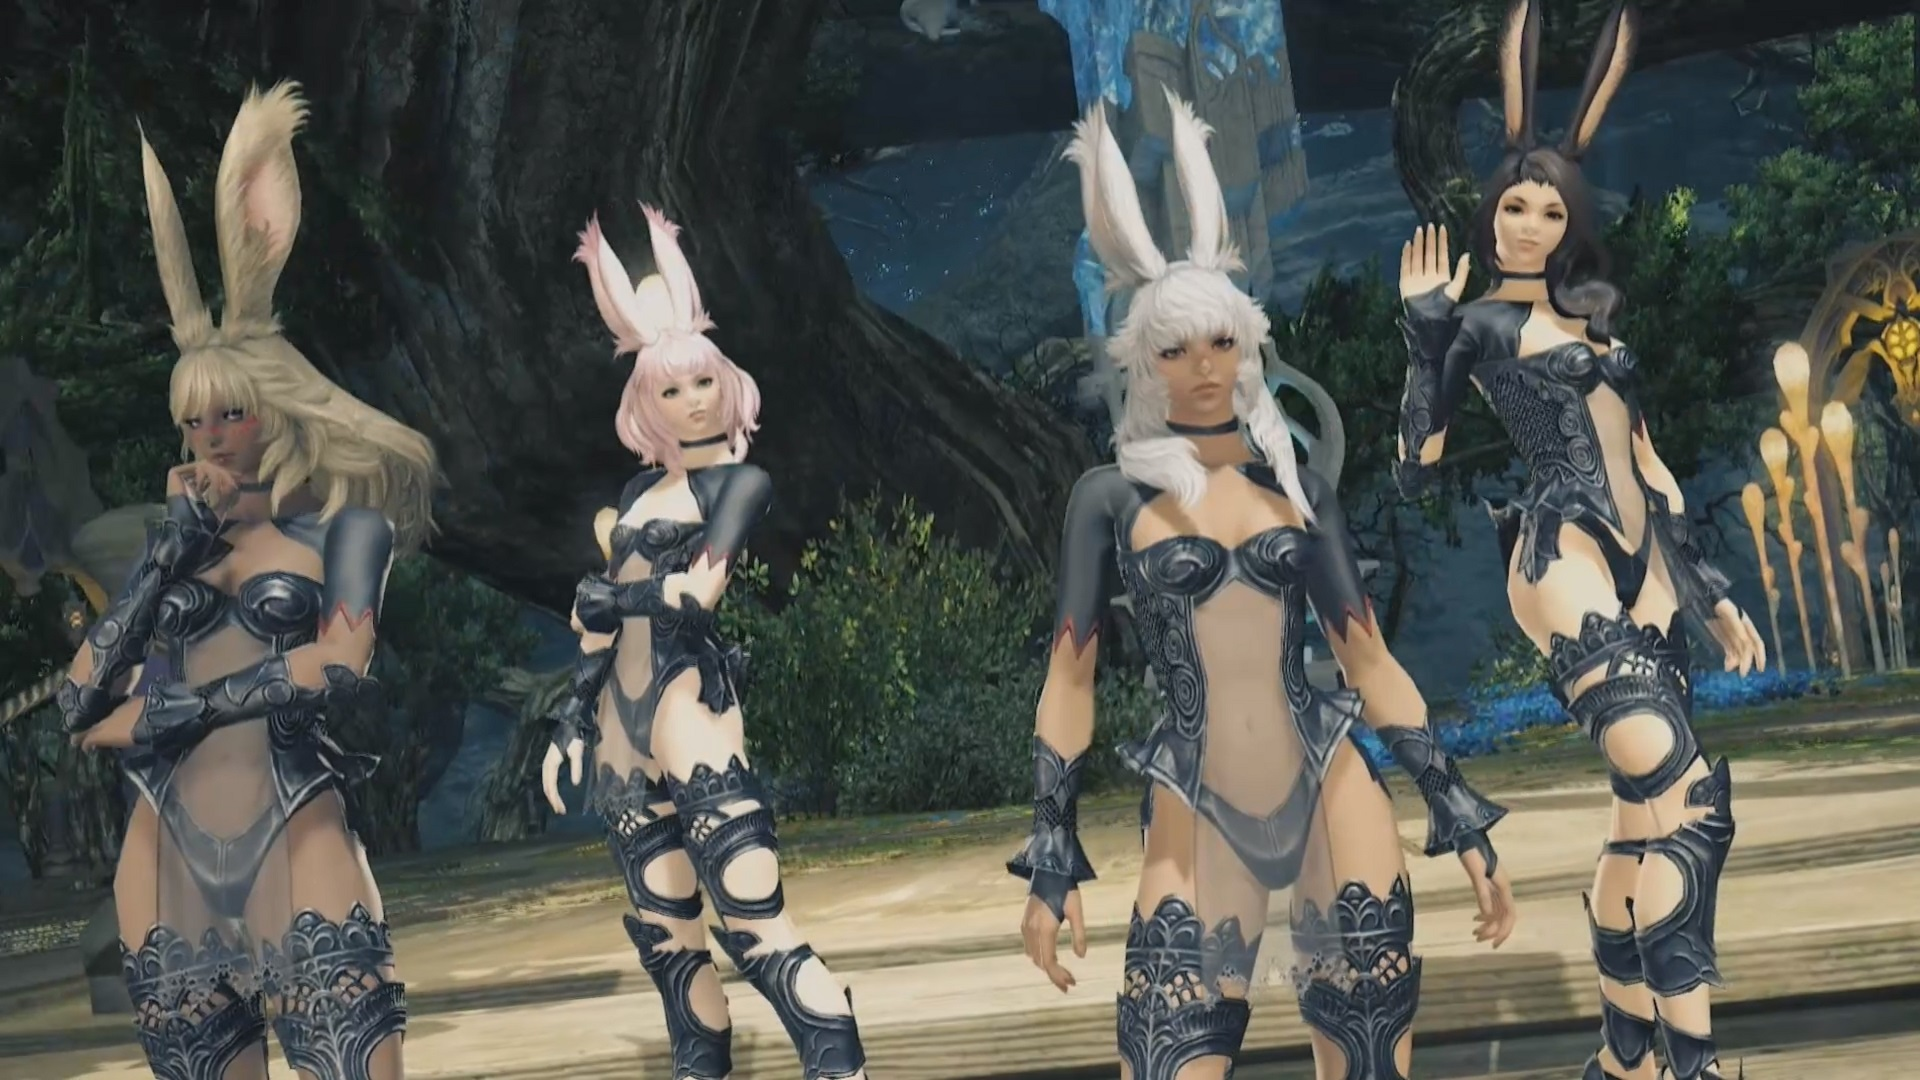 Final Fantasy 14 Shadowbringers Has A Release Date And A NieR Automata Crossover Final Fantasy